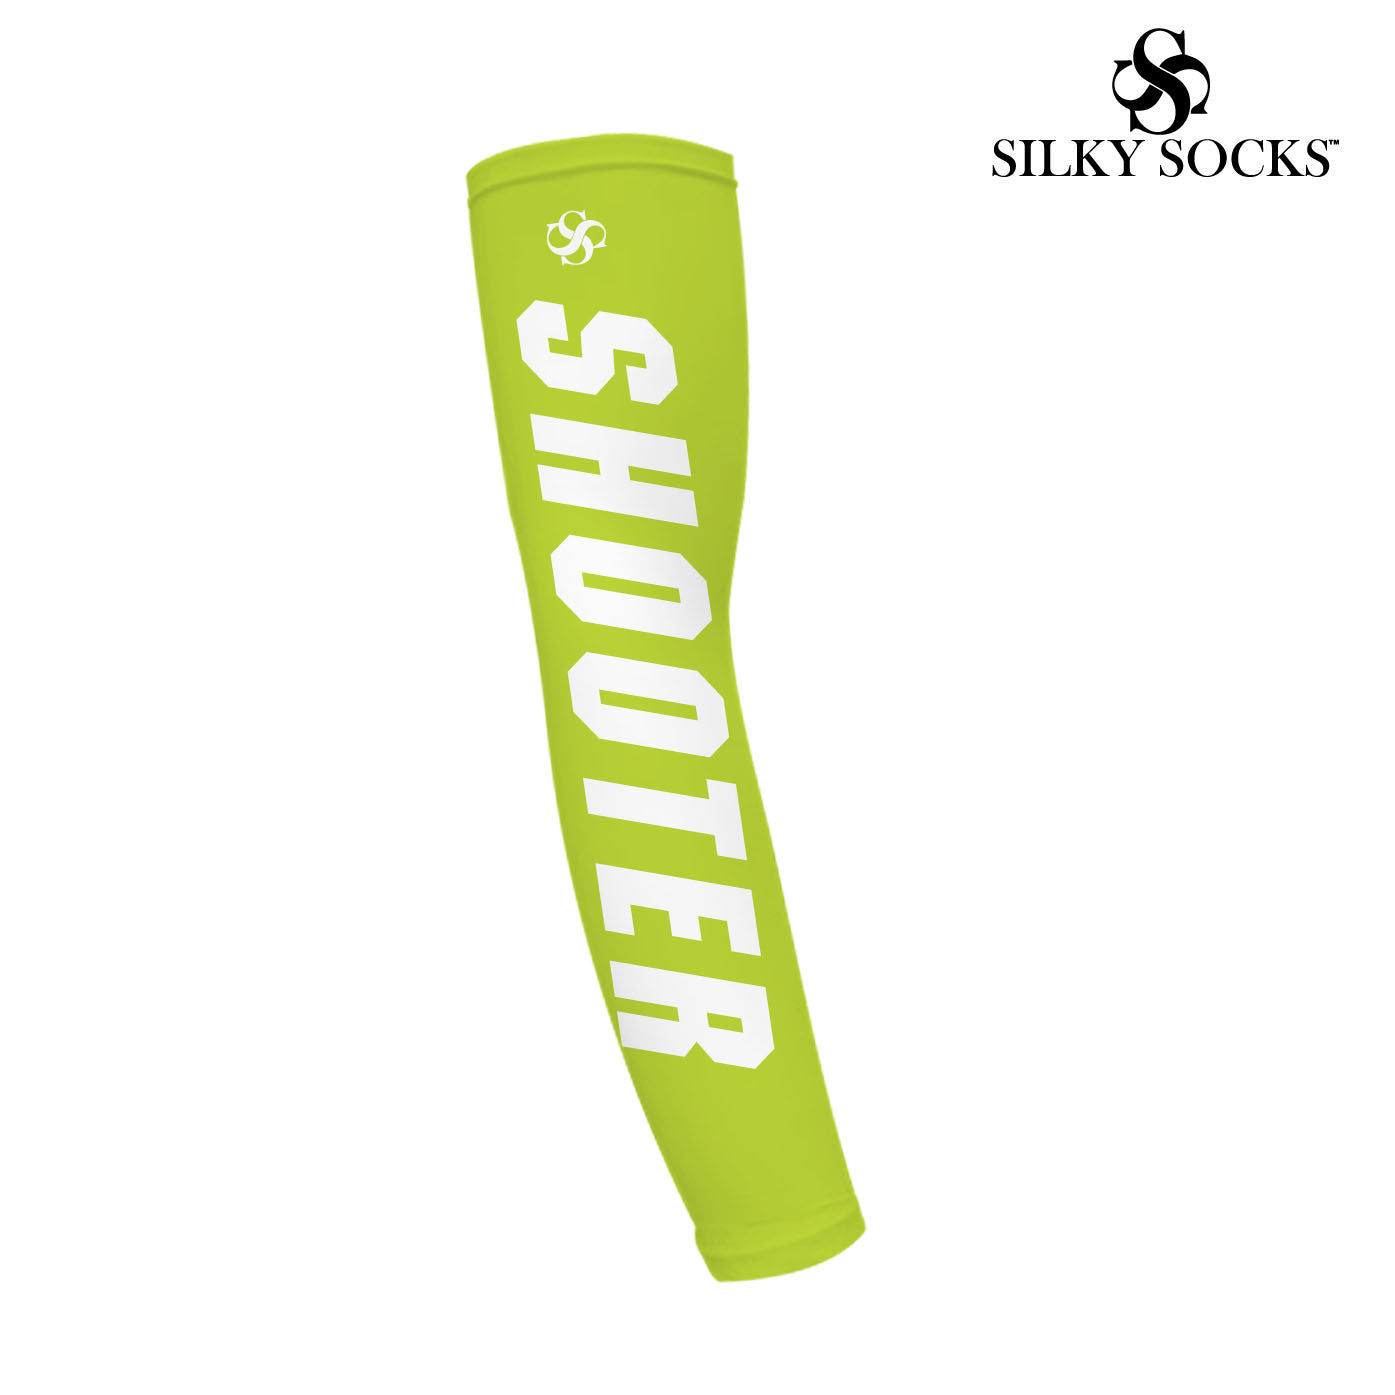 Shooter Sleeve (5 Colorways!) - SILKY SOCKS - official store